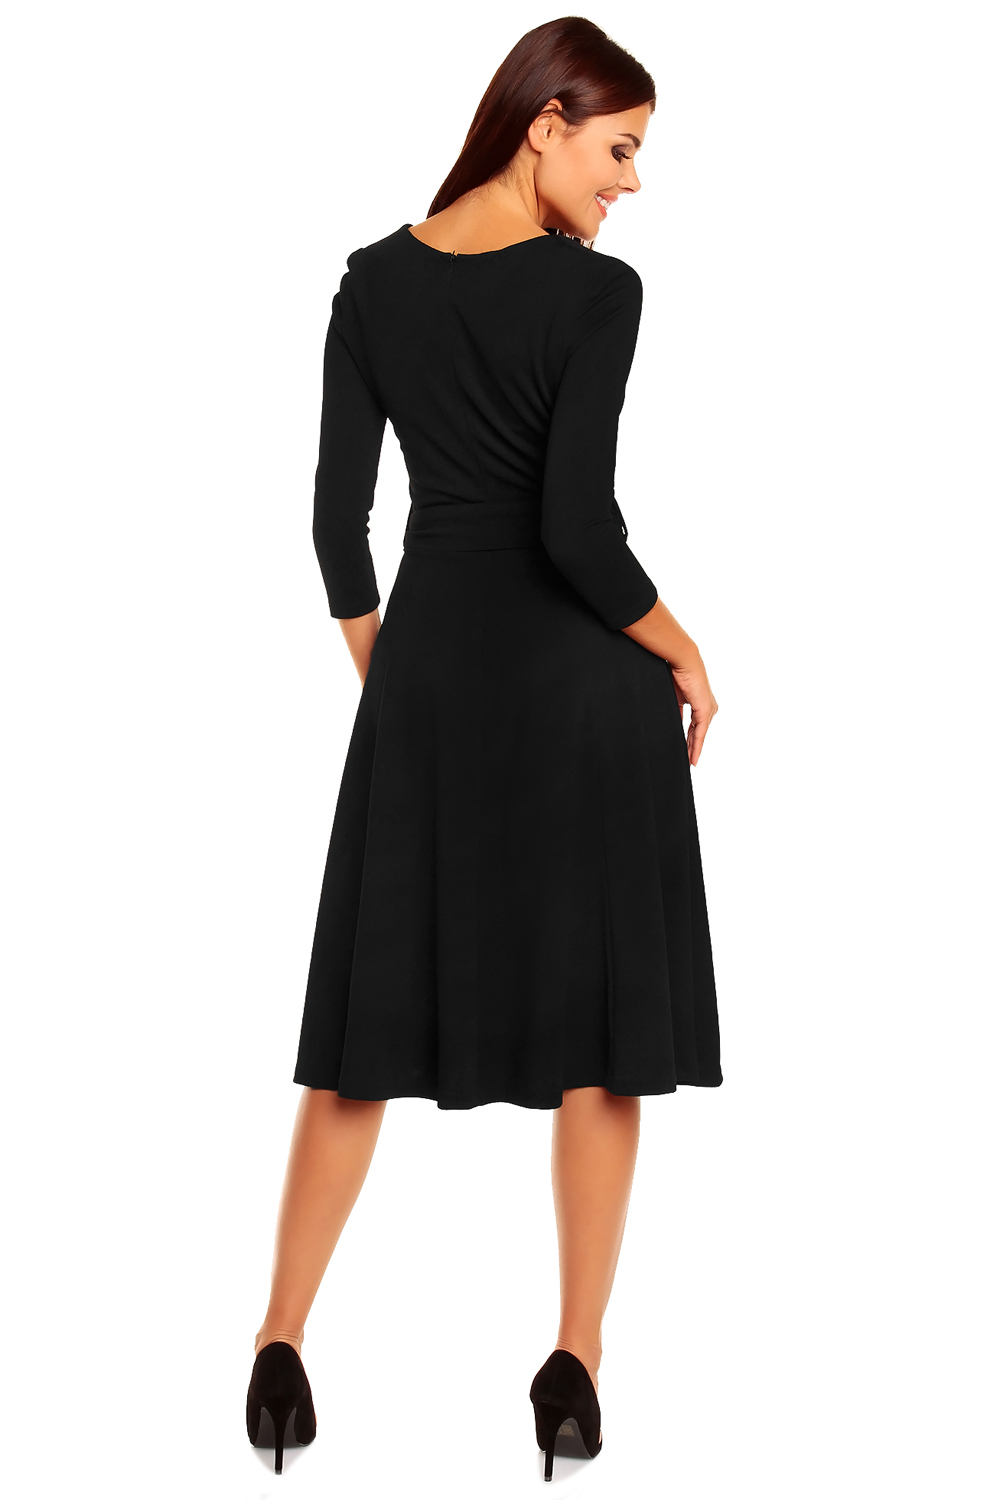 black pleated dress with loop belts